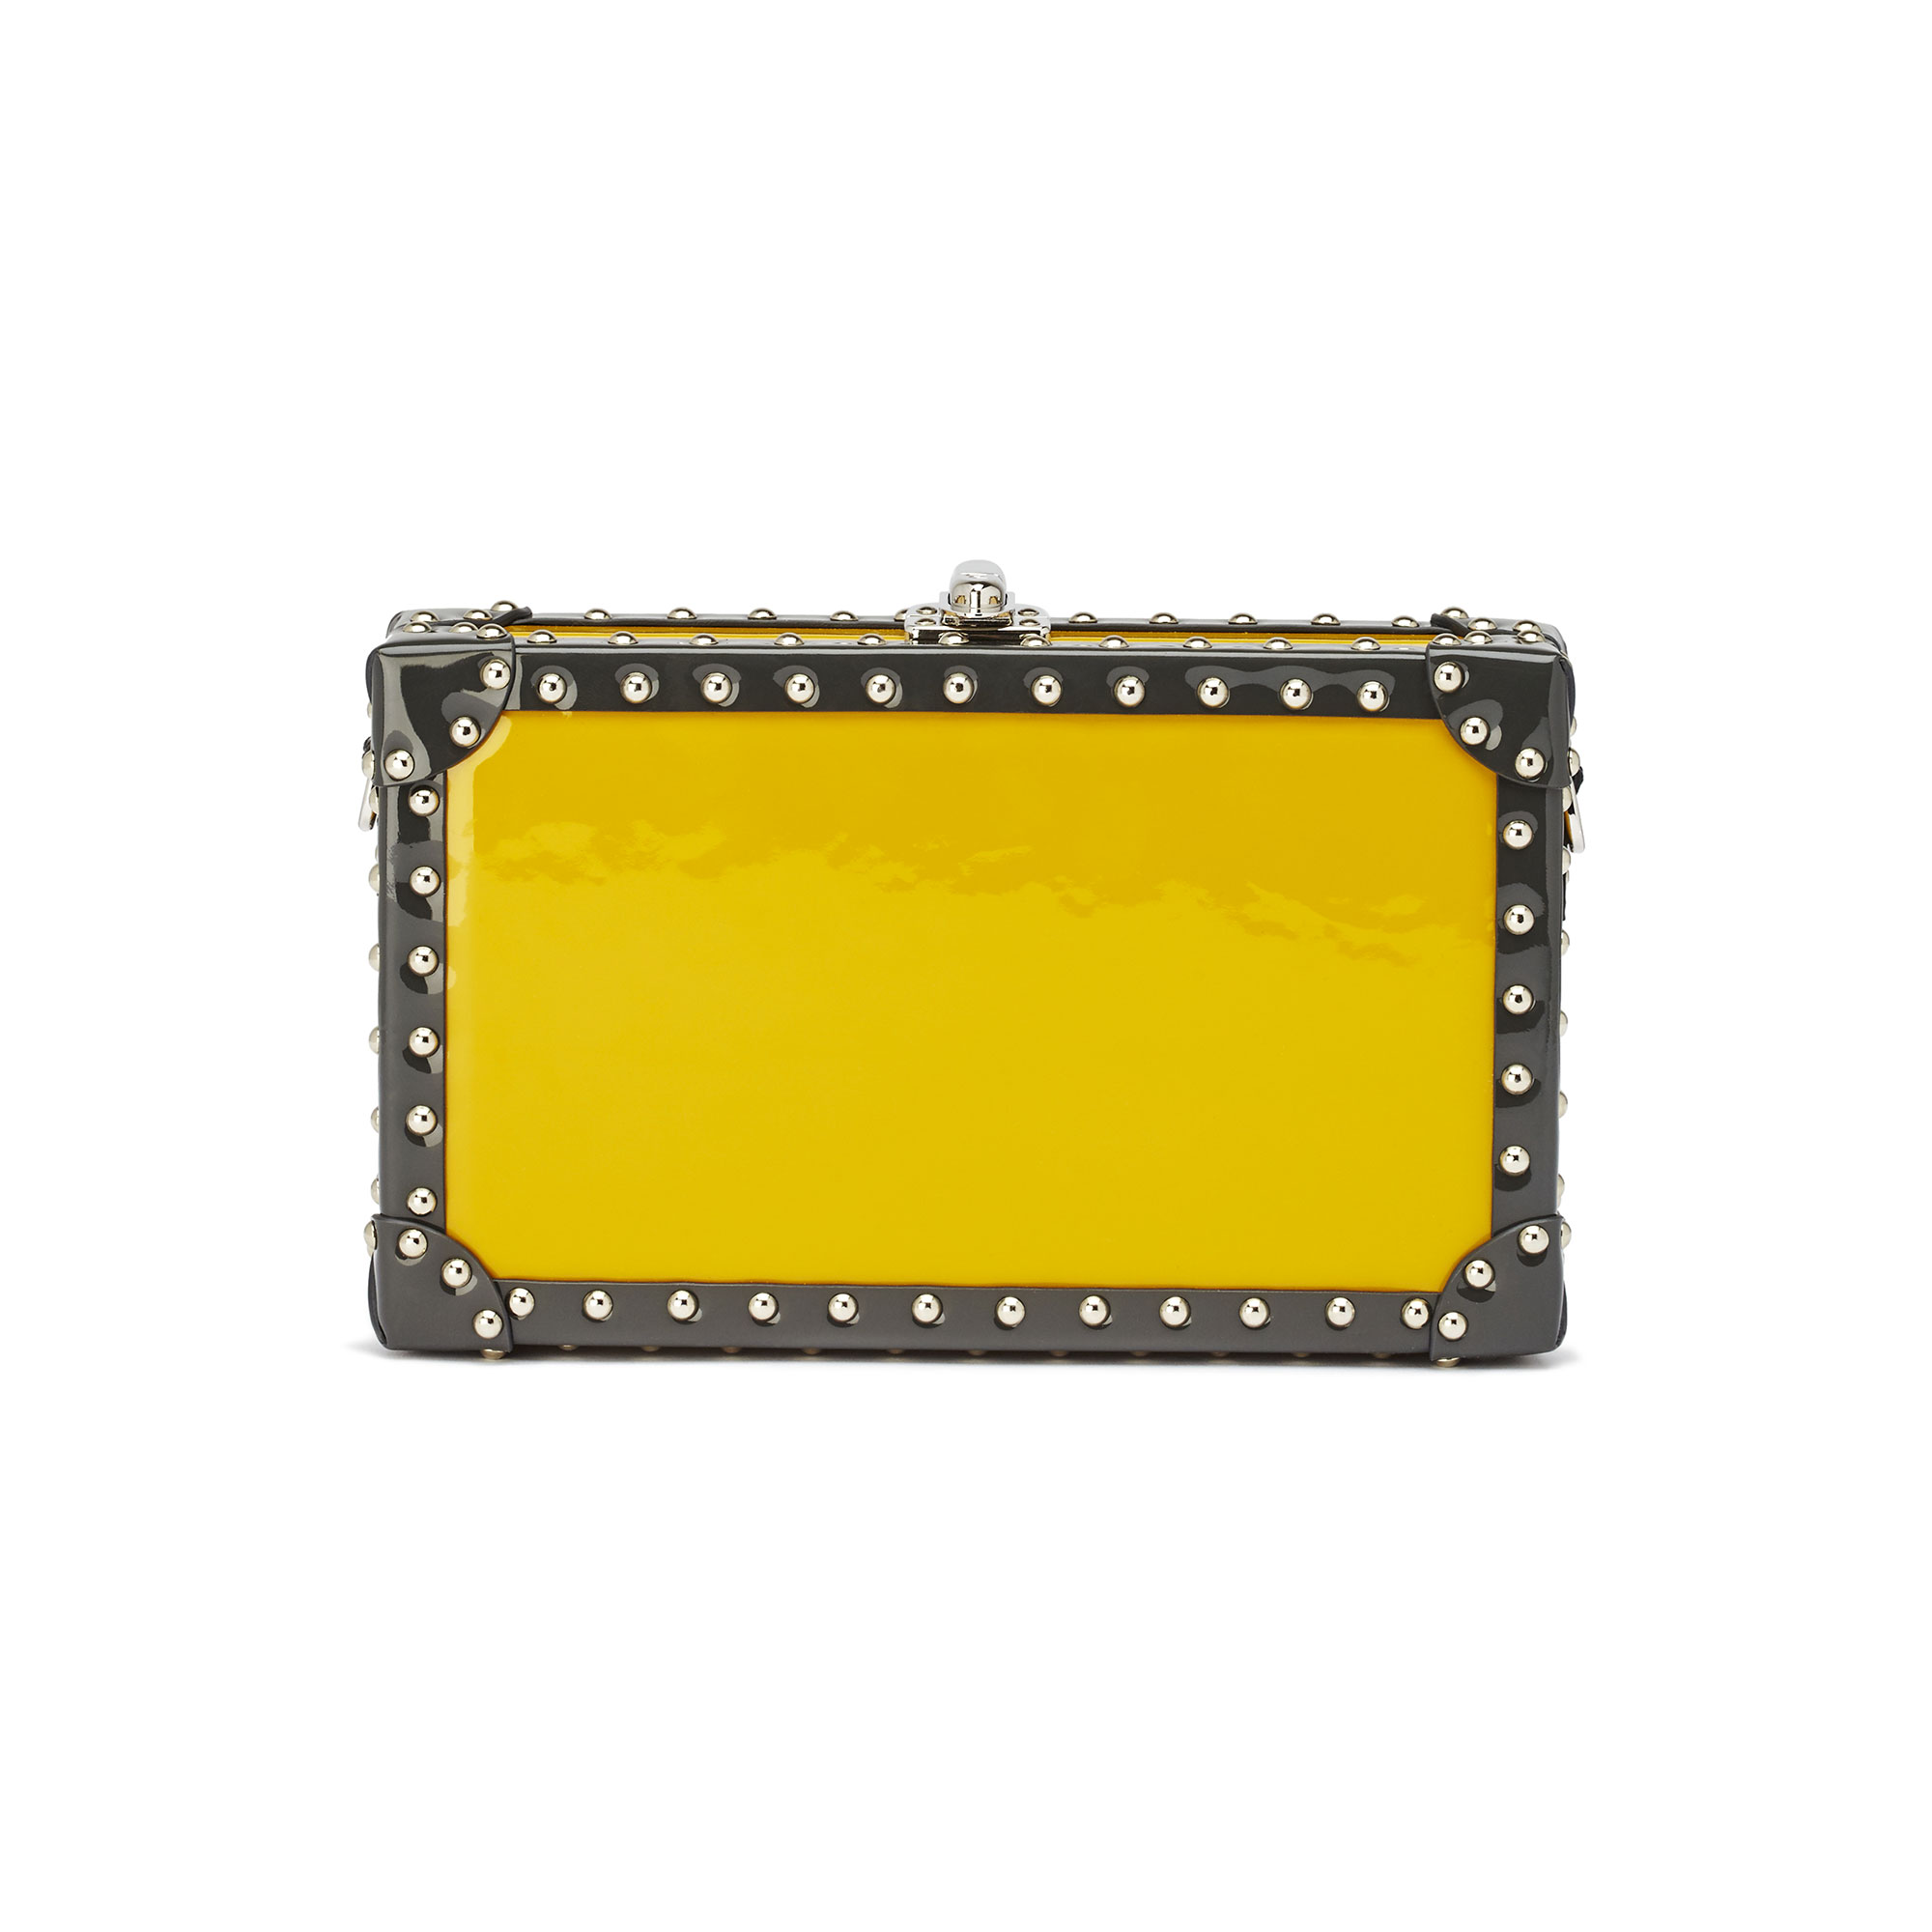 Box-Bertoncina-mustard-patent-leather-bag-Bertoni-1949_01